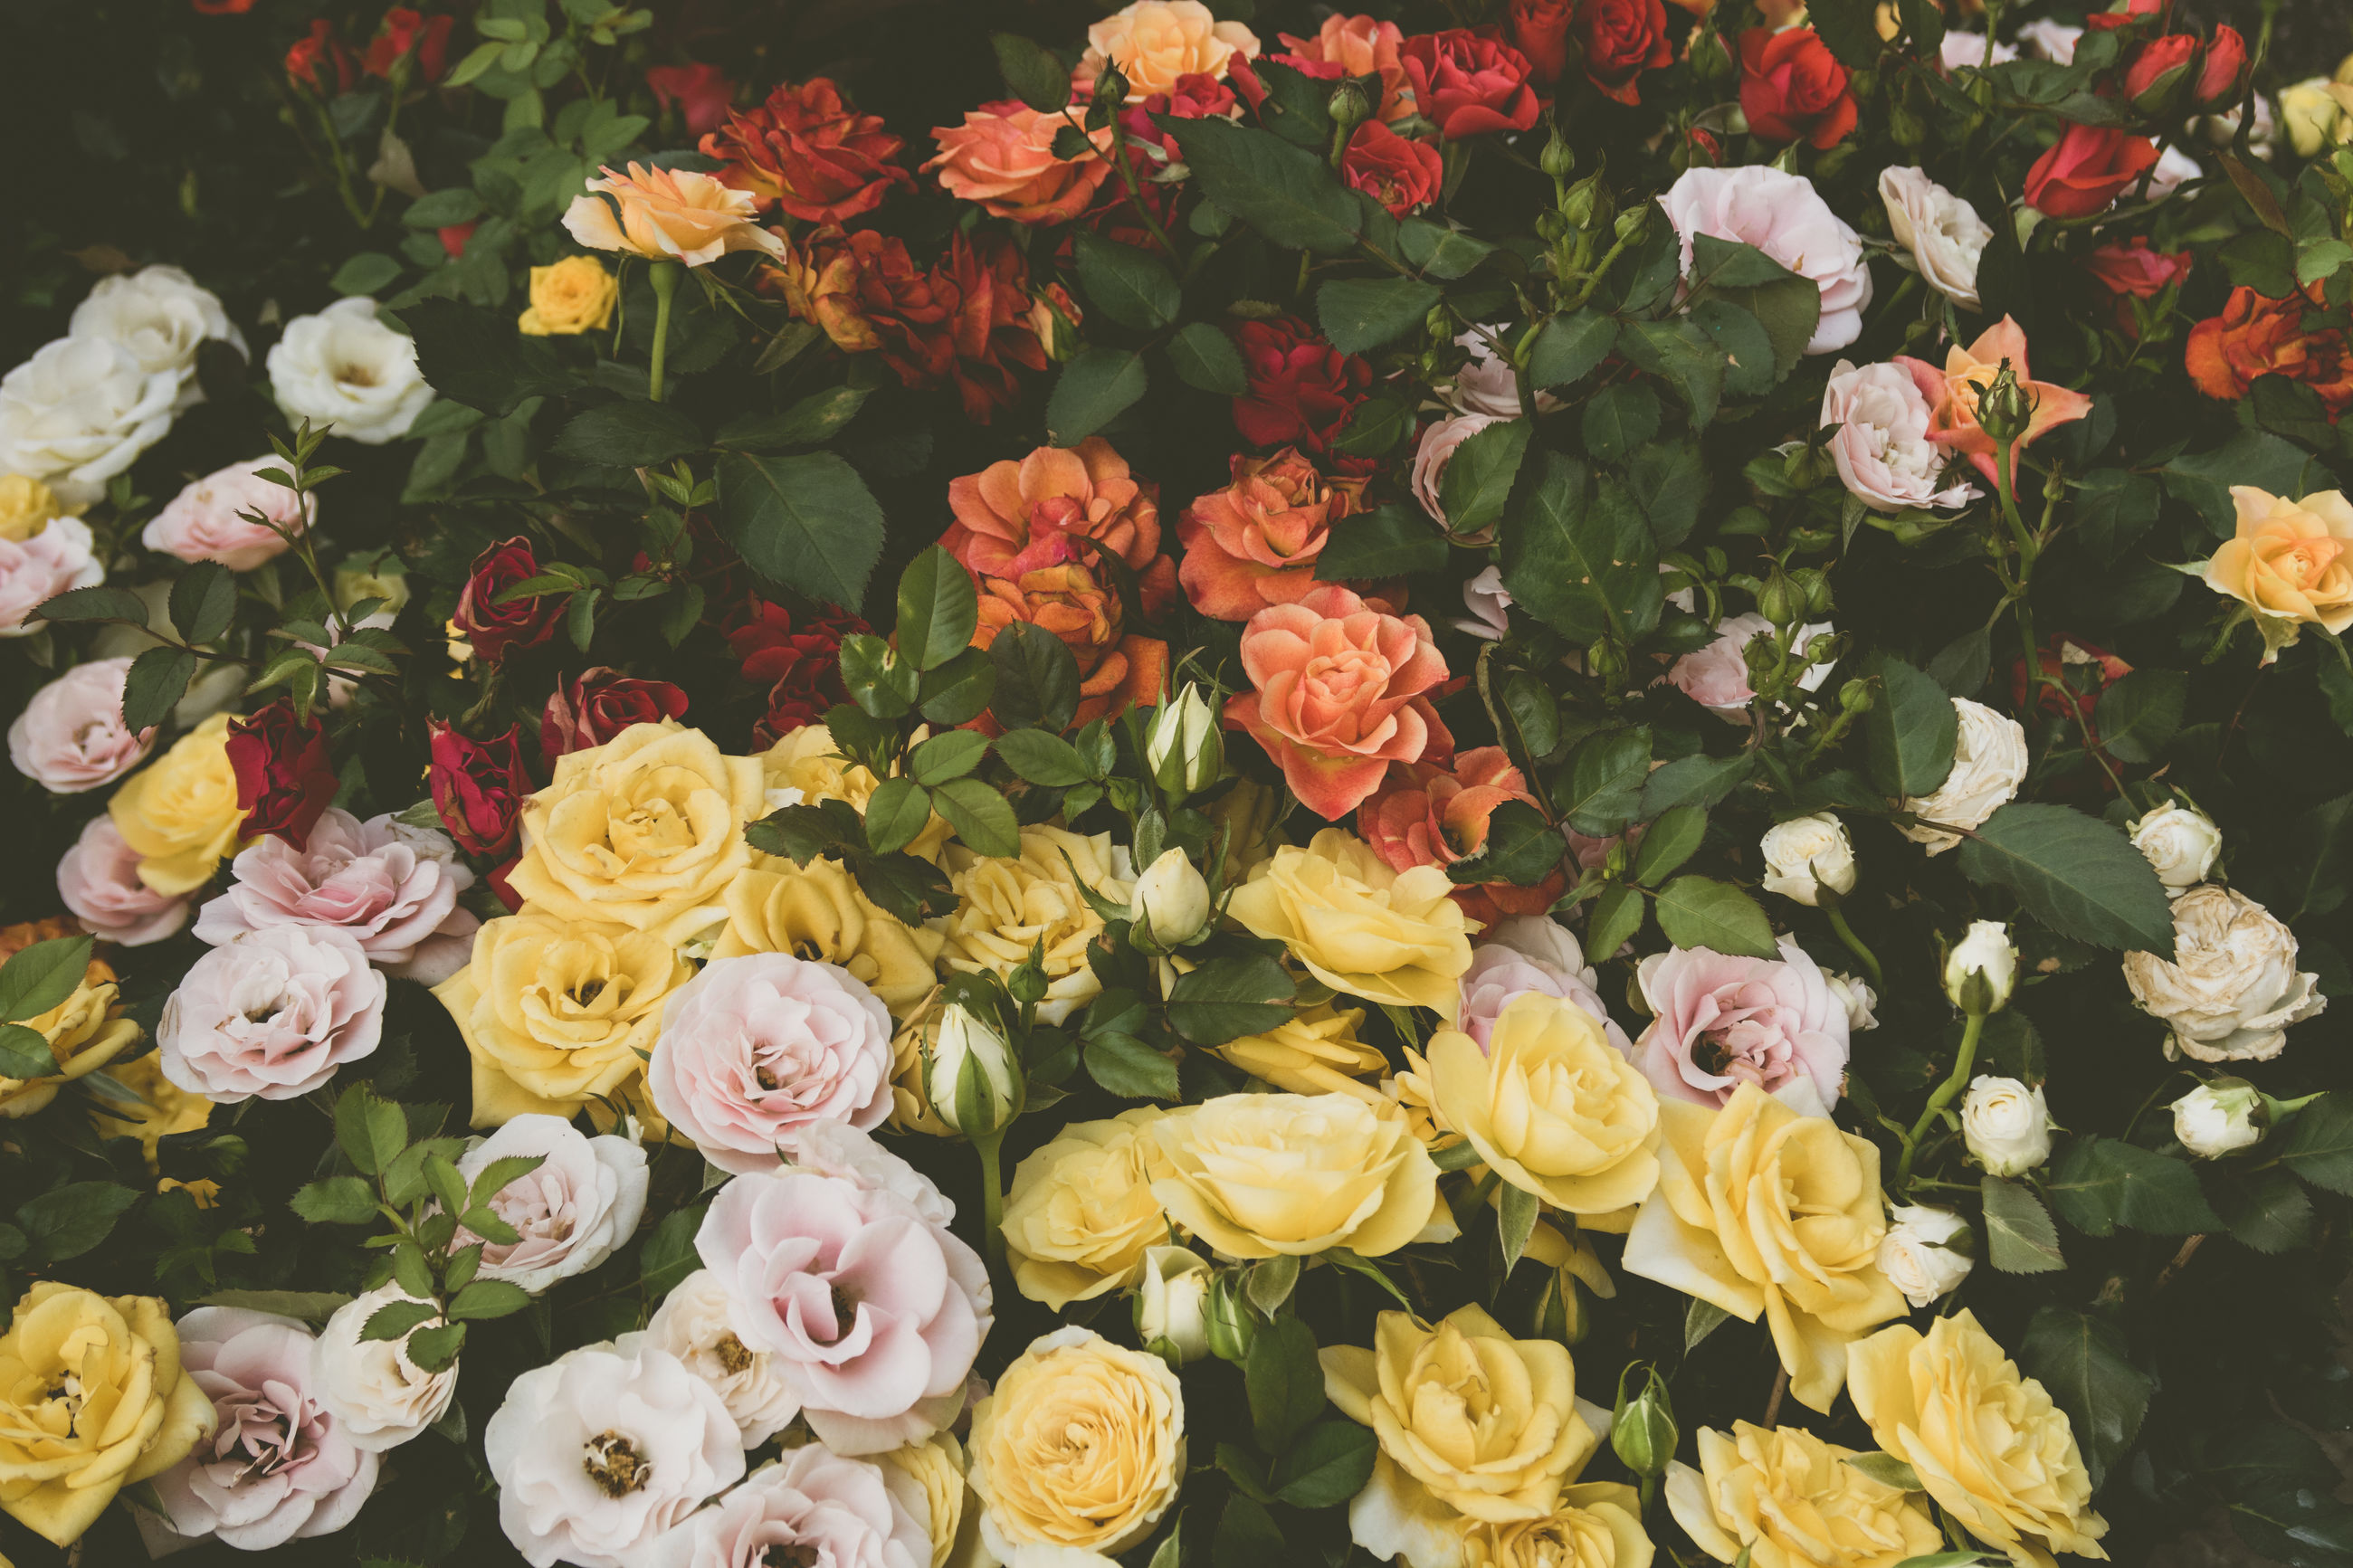 flower, freshness, fragility, petal, beauty in nature, rose - flower, flower head, backgrounds, growth, high angle view, full frame, nature, close-up, multi colored, yellow, variation, plant, bunch of flowers, springtime, colorful, bouquet, blooming, pink color, day, rose, blossom, flower arrangement, botany, various, in bloom, no people